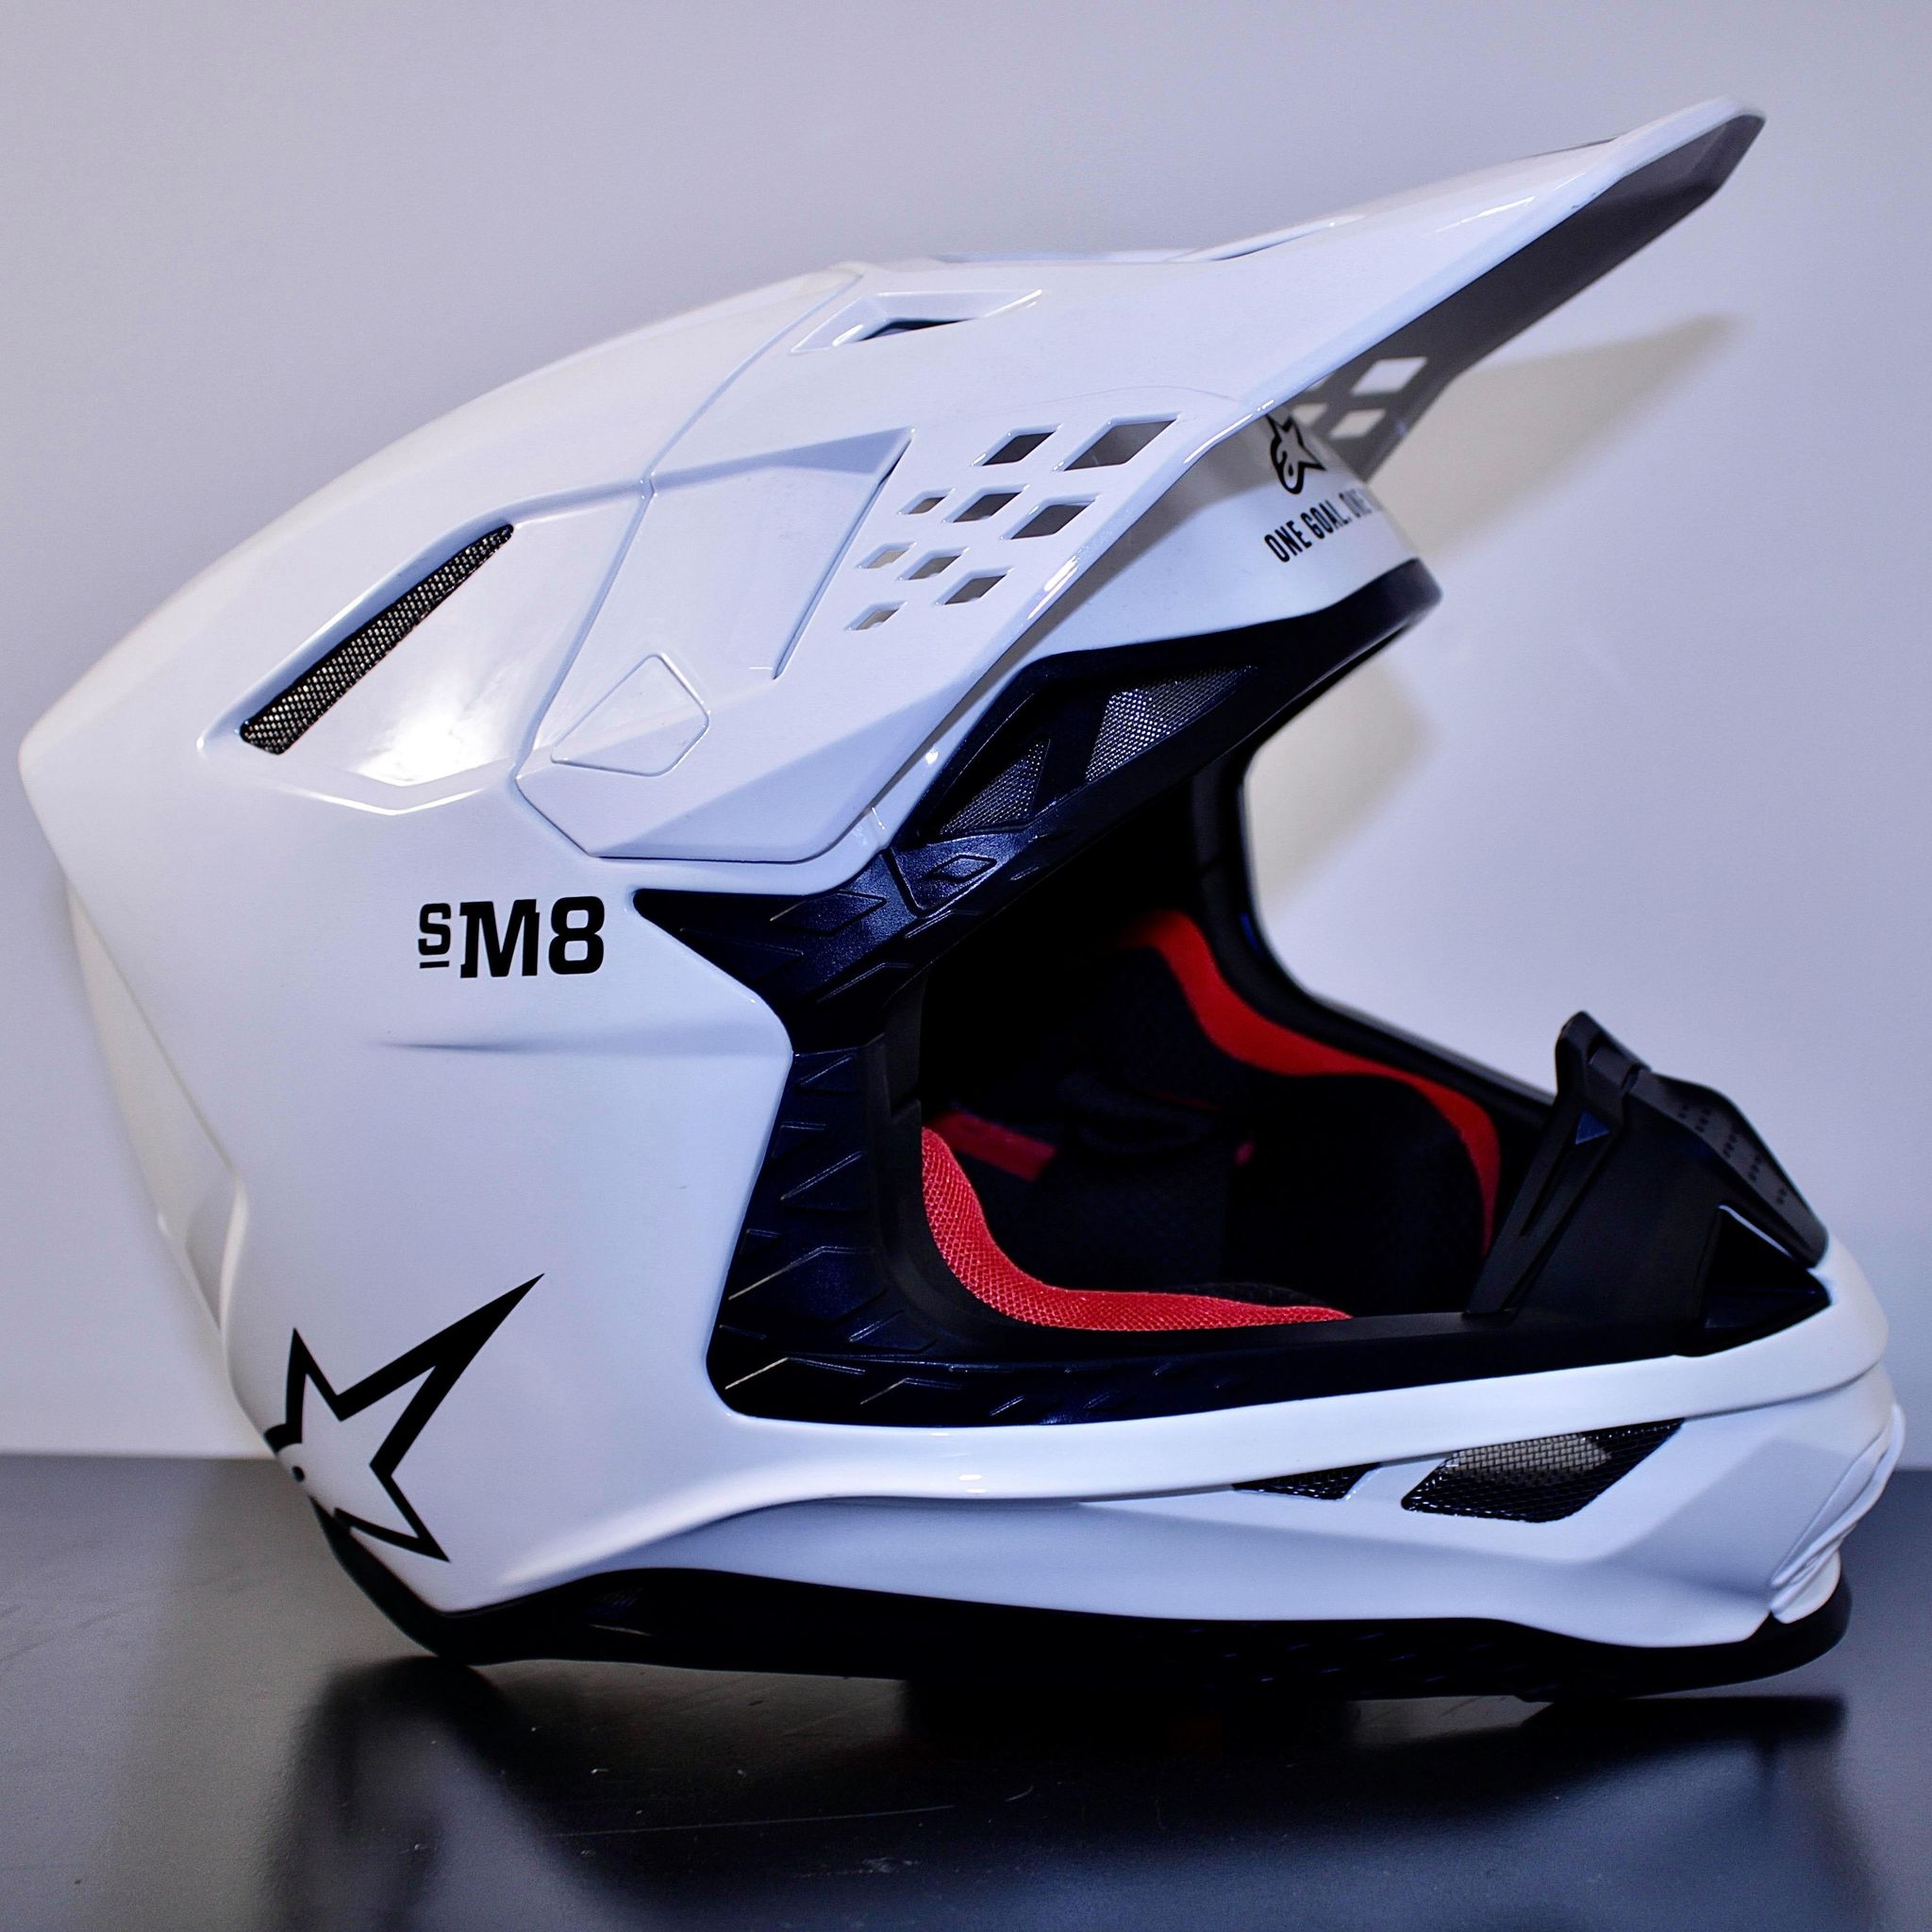 Casque Cross ALPINESTARS SM-8 Blanc Brillant 2021